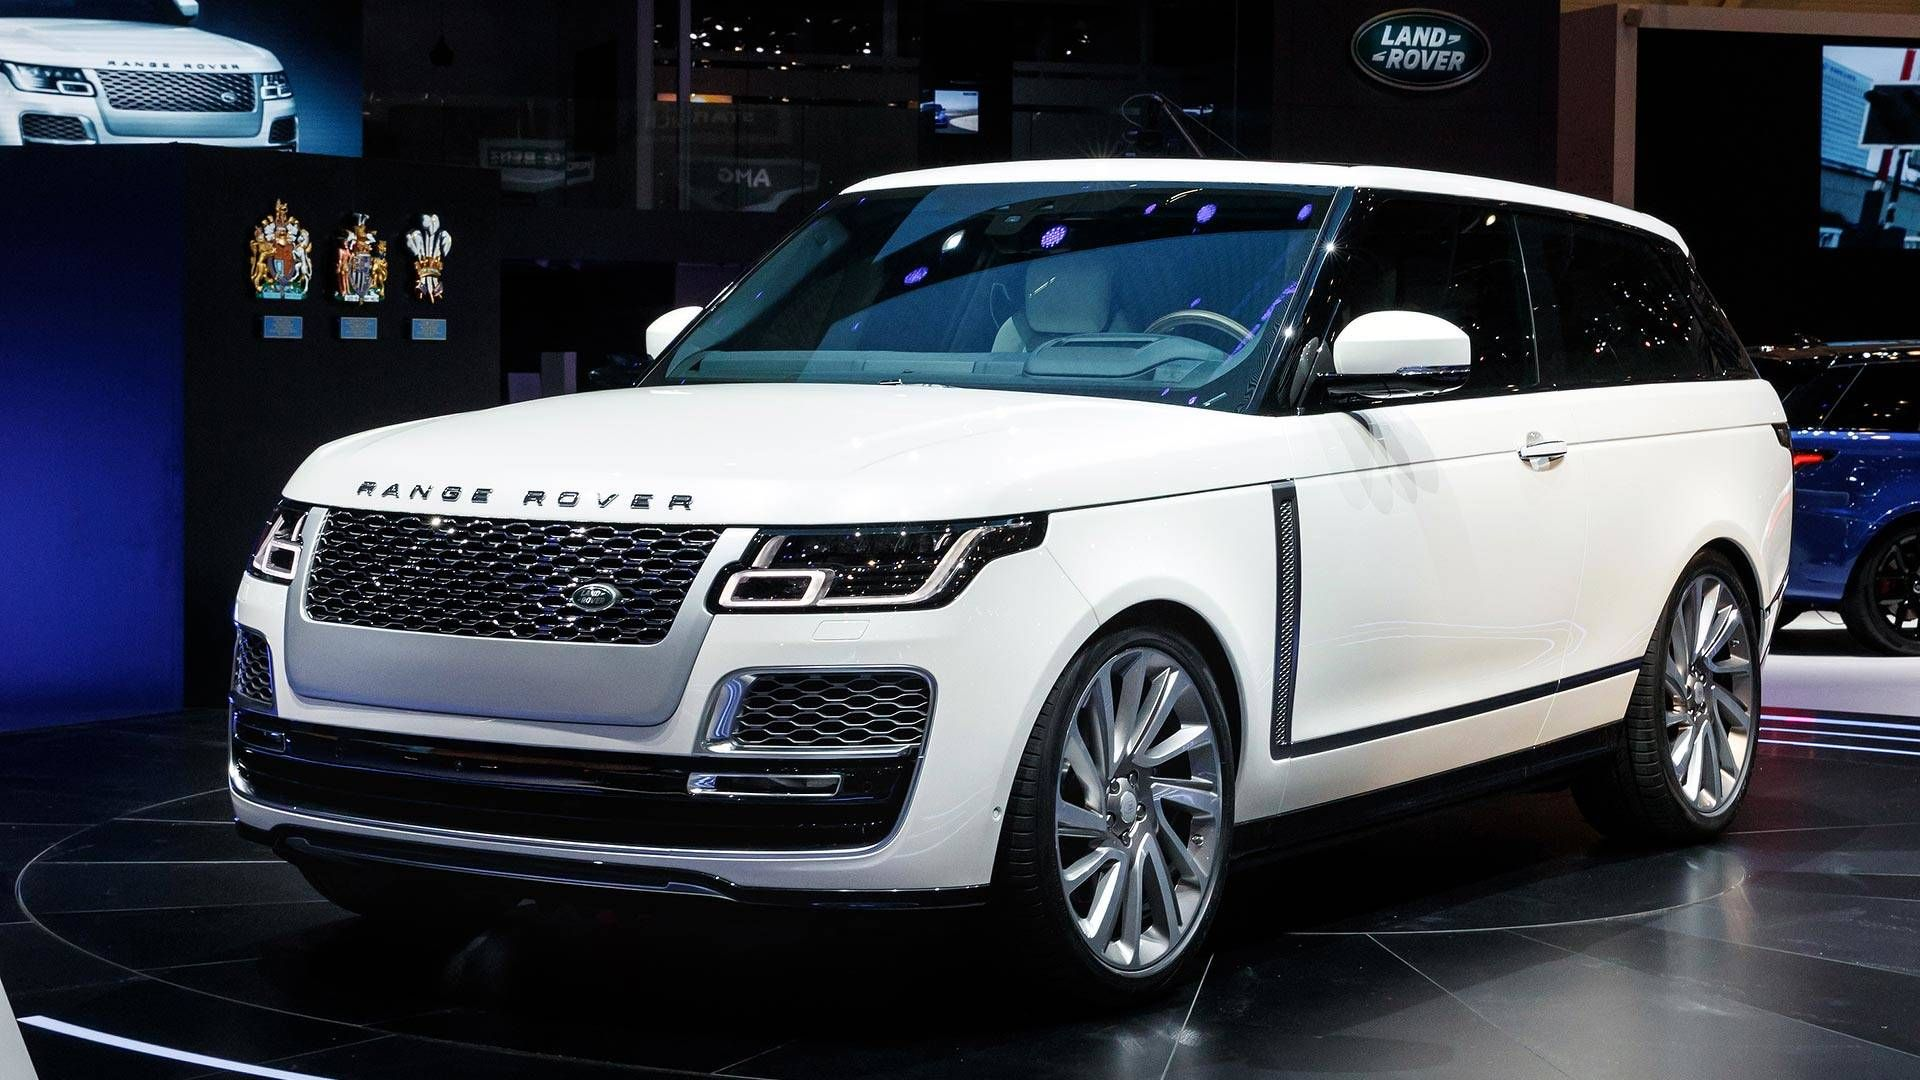 2019 Land Rover Range Rover Sv Coupe Motor1 Com Photos Range Rover Sv Range Rover Sport Range Rover